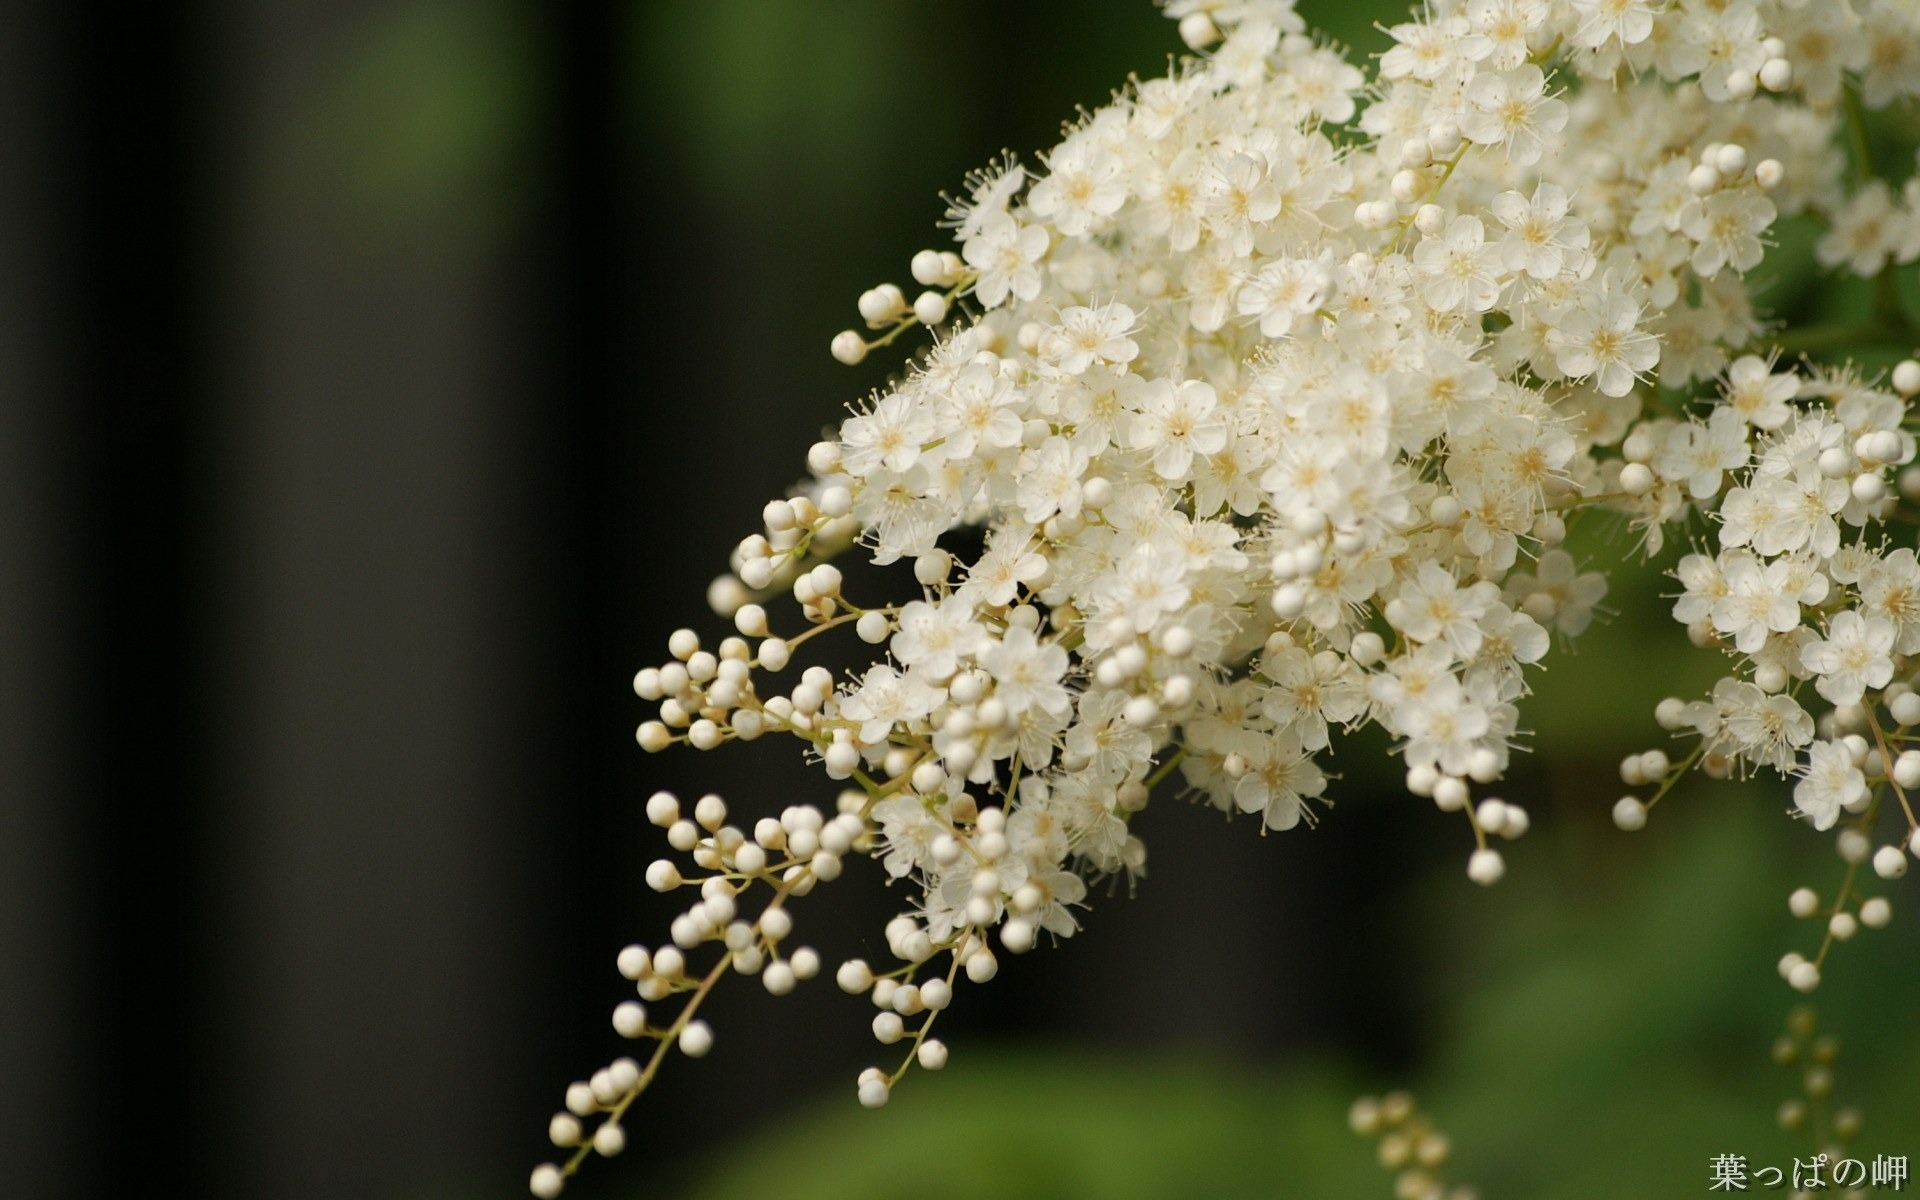 White Jade Flower Hd Flowers Photography Preview 10wallpaper